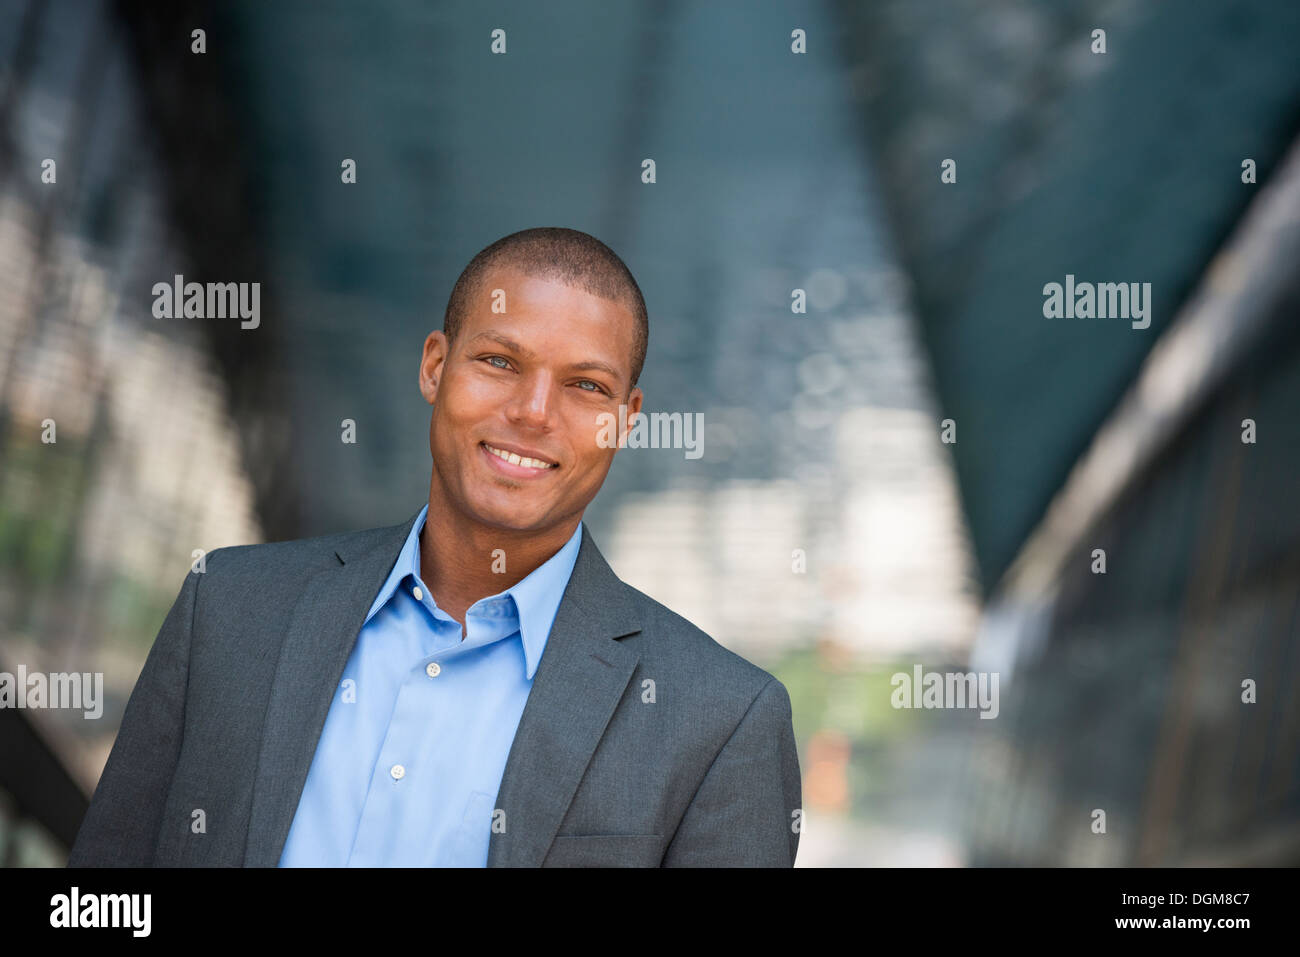 A businessman in a suit, with his shirt collar unbuttoned. On a New York city street. - Stock Image